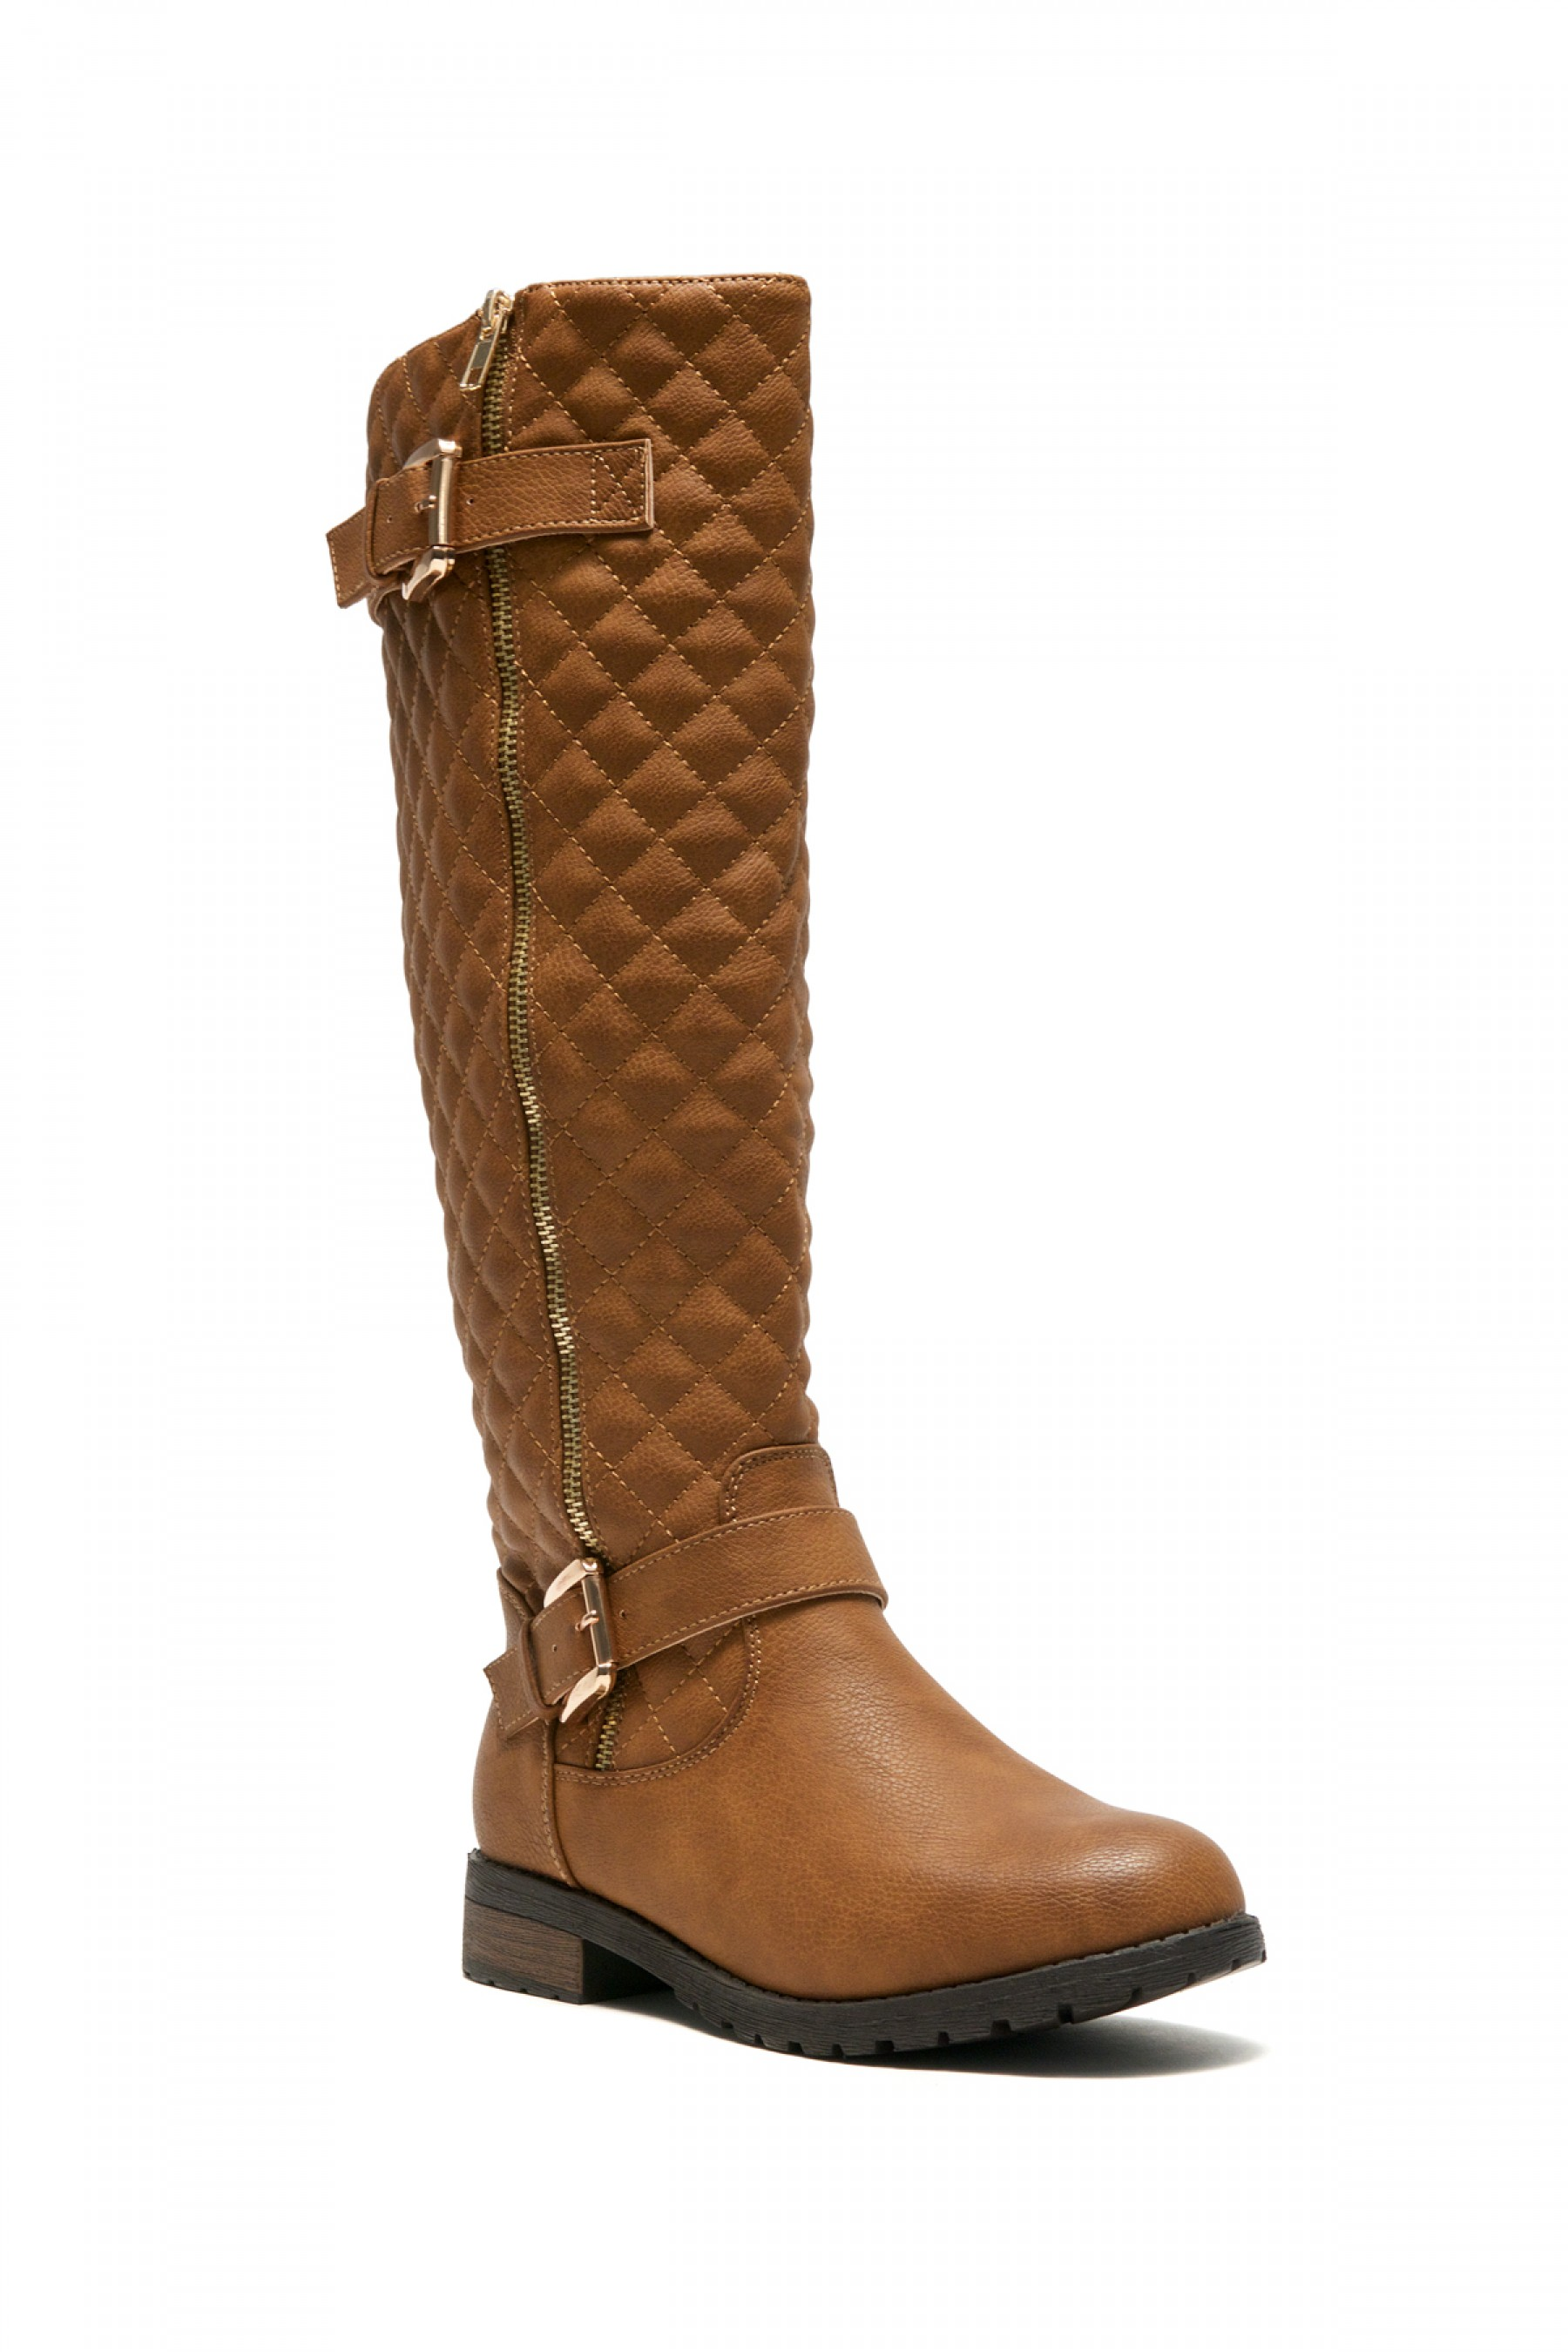 Women's Tan Lorreenn-Hi Women's Quilted, Zipper, Double Buckles Accent, Lug sole,Riding Knee-hi Boots